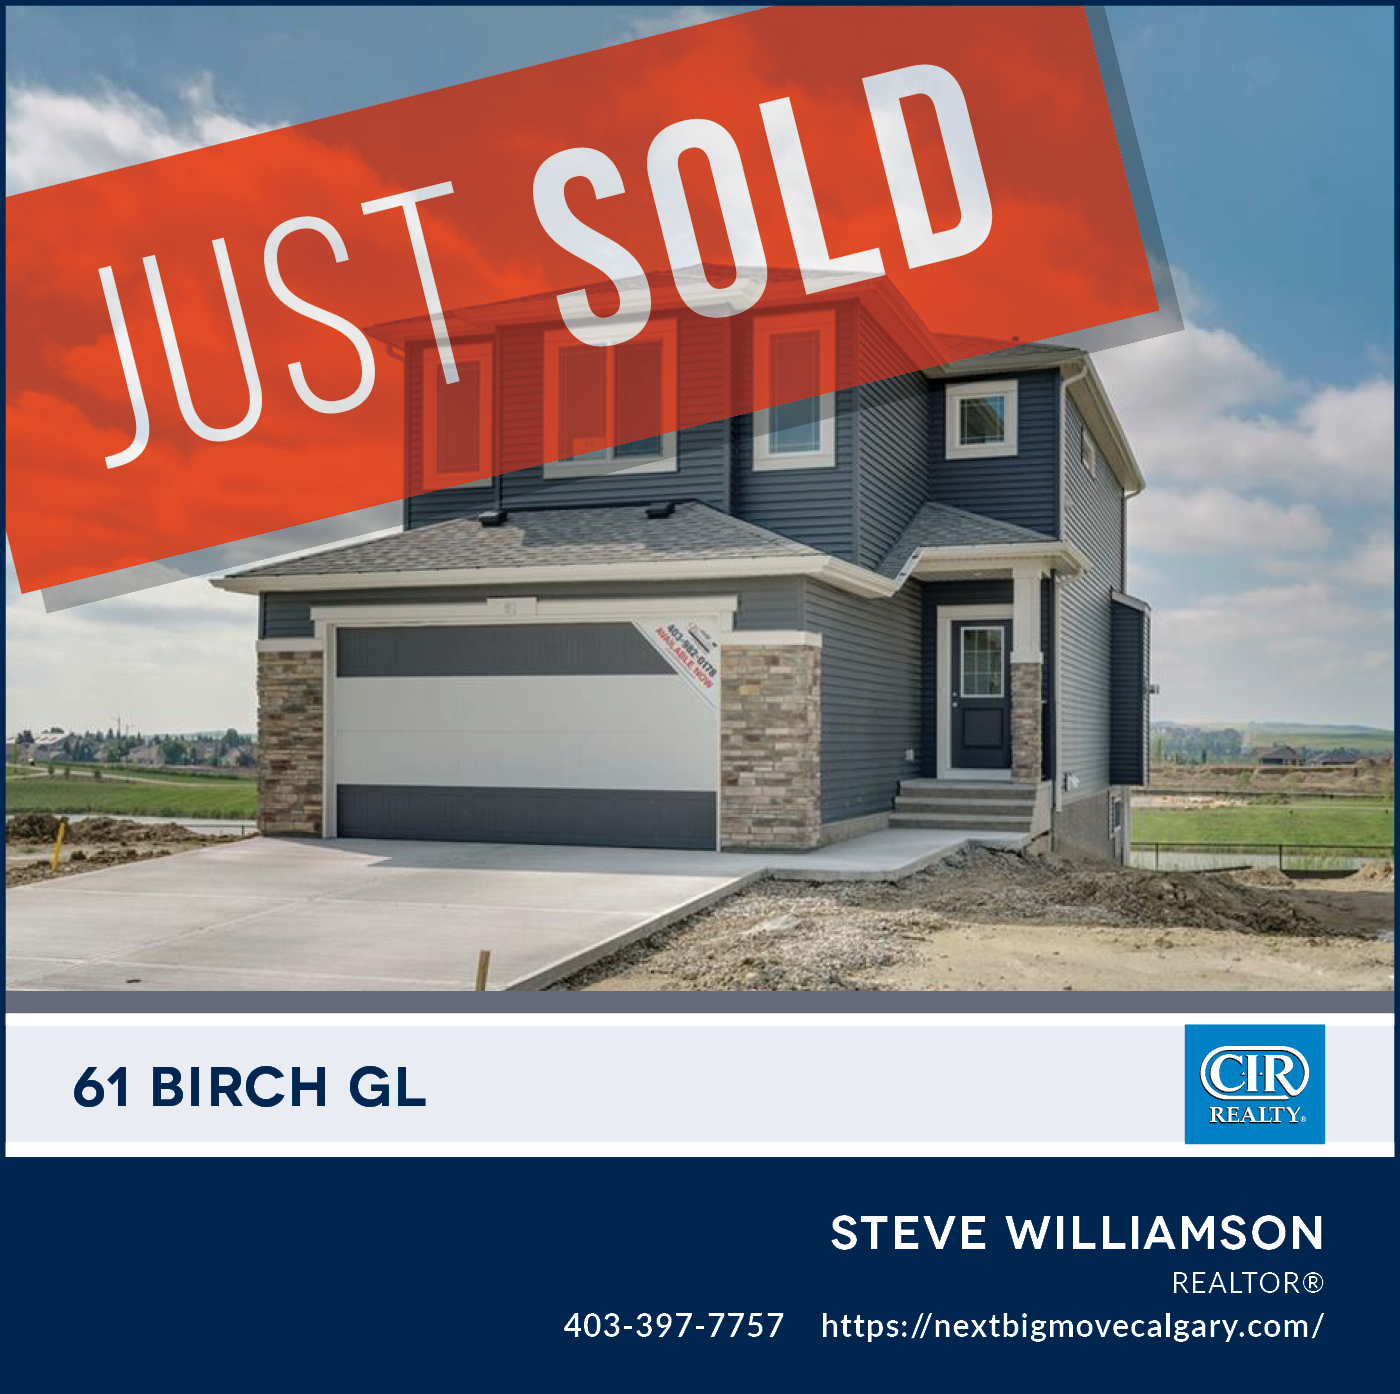 Just Sold - 61 Birch Glen Okotoks